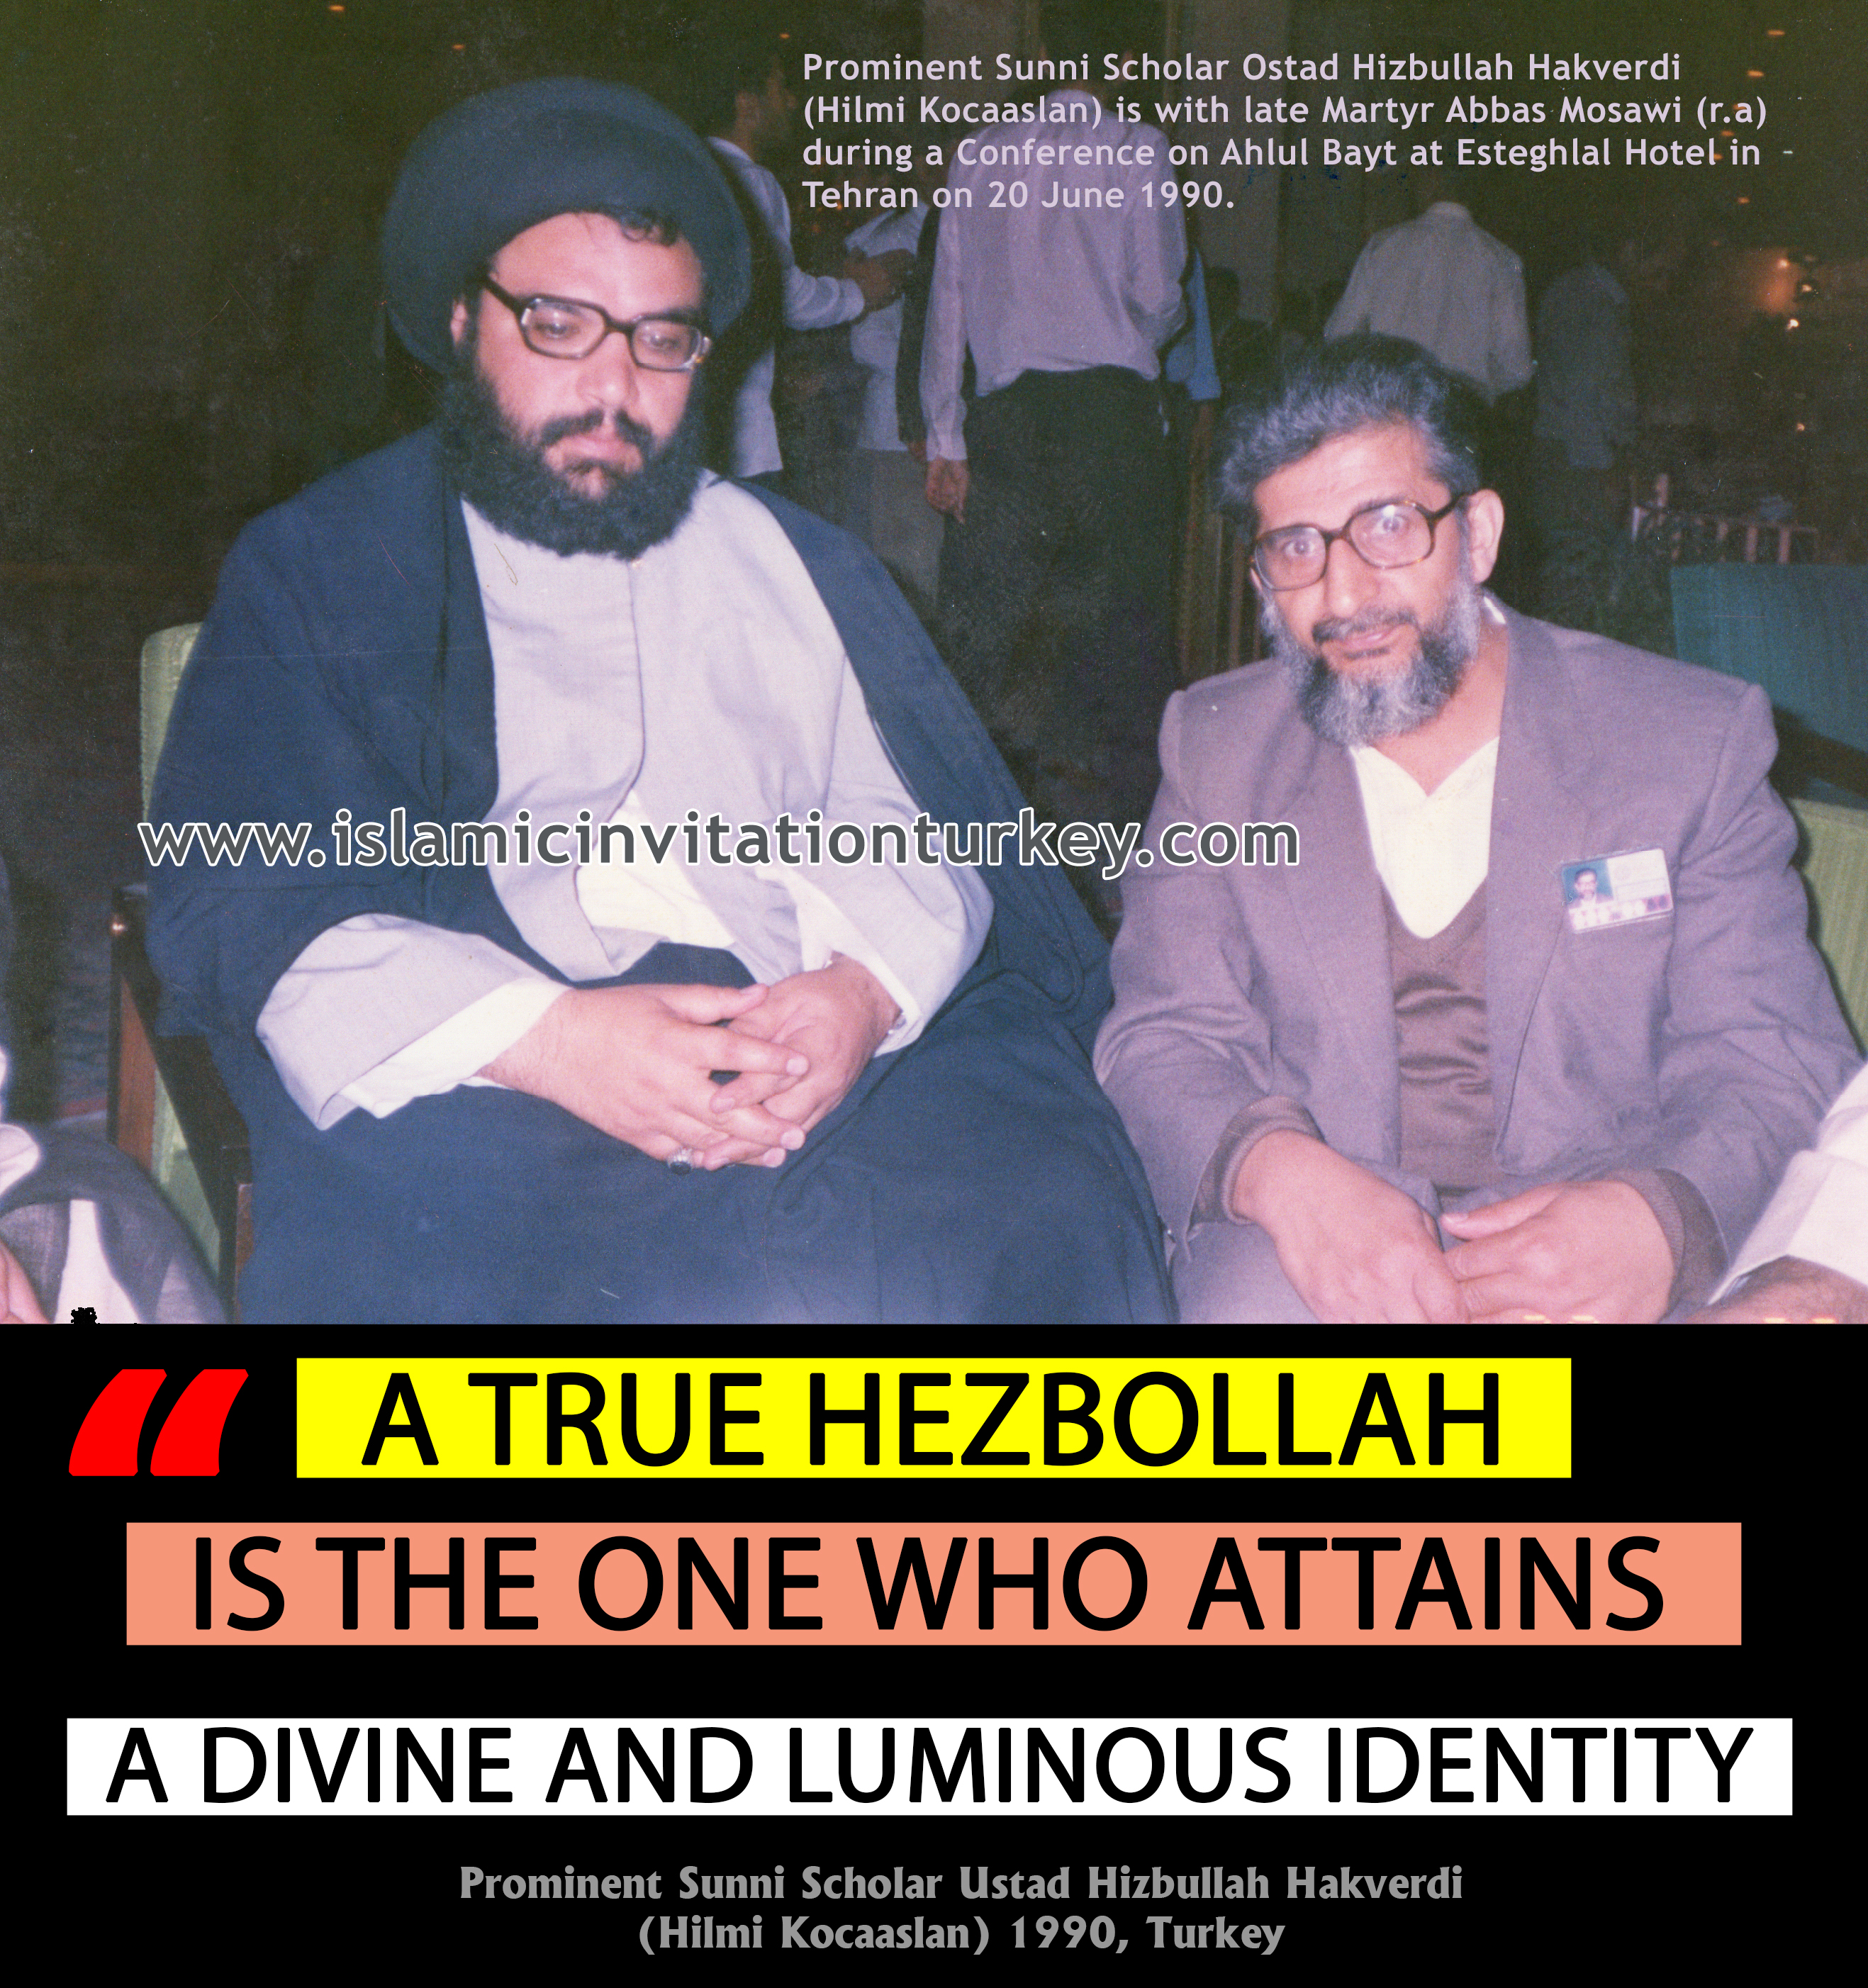 """Photo of Prominent Sunni Scholar Ustad Hakverdi, """"A true Hezbollah is the one who attains a divine and luminous identity,"""""""